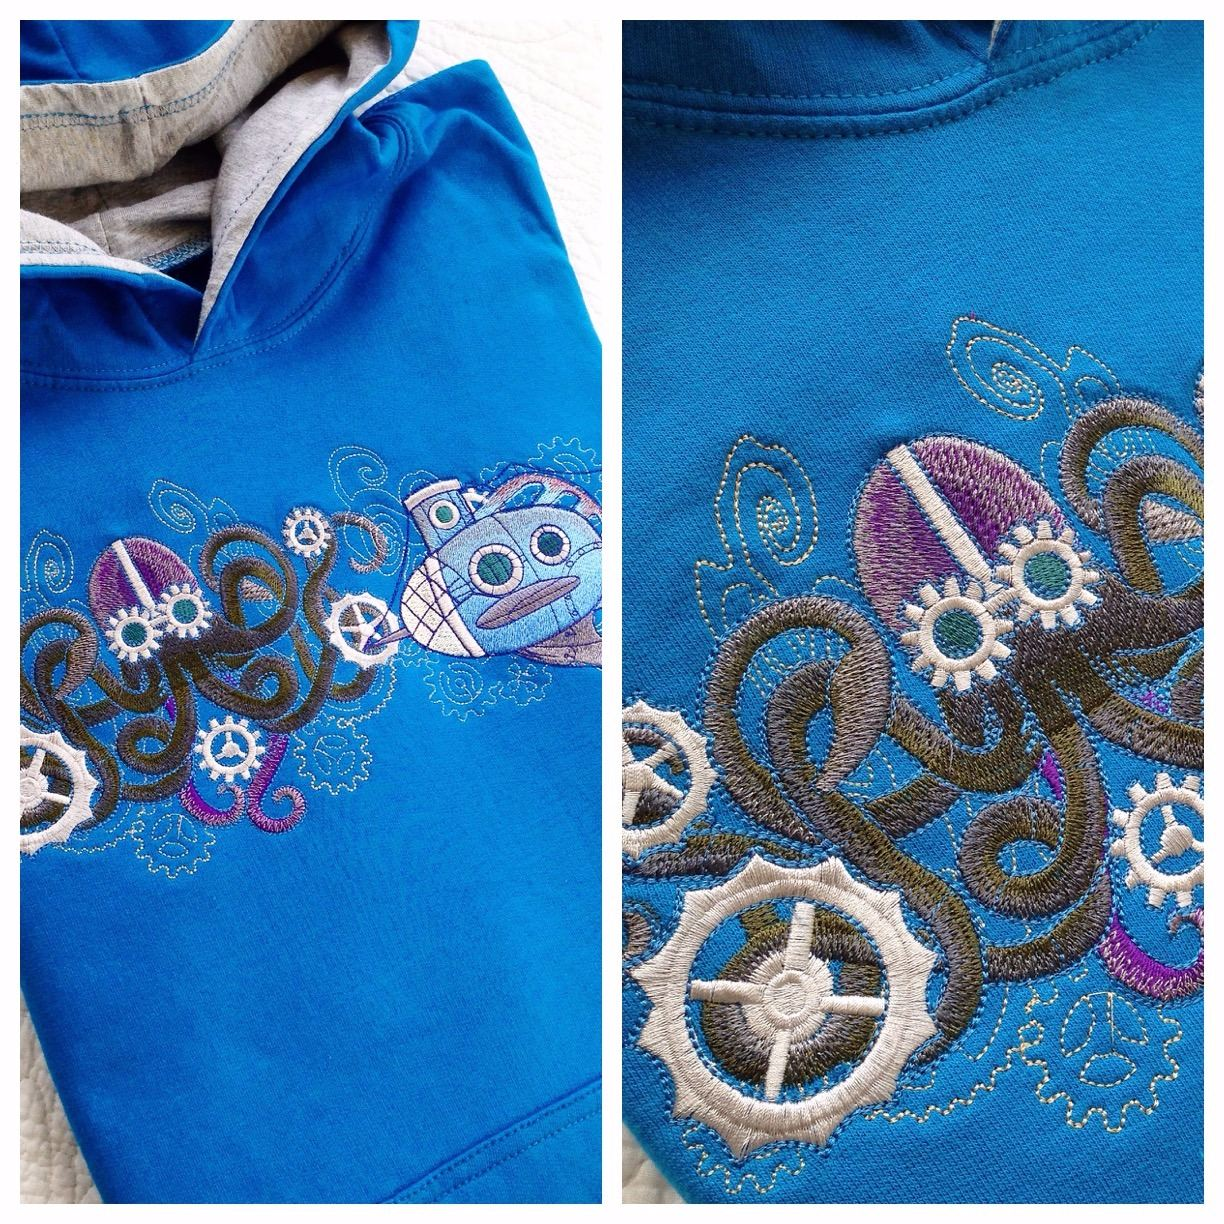 steampunk gothic sea creature octopus and submarine hoodie.jpg 3